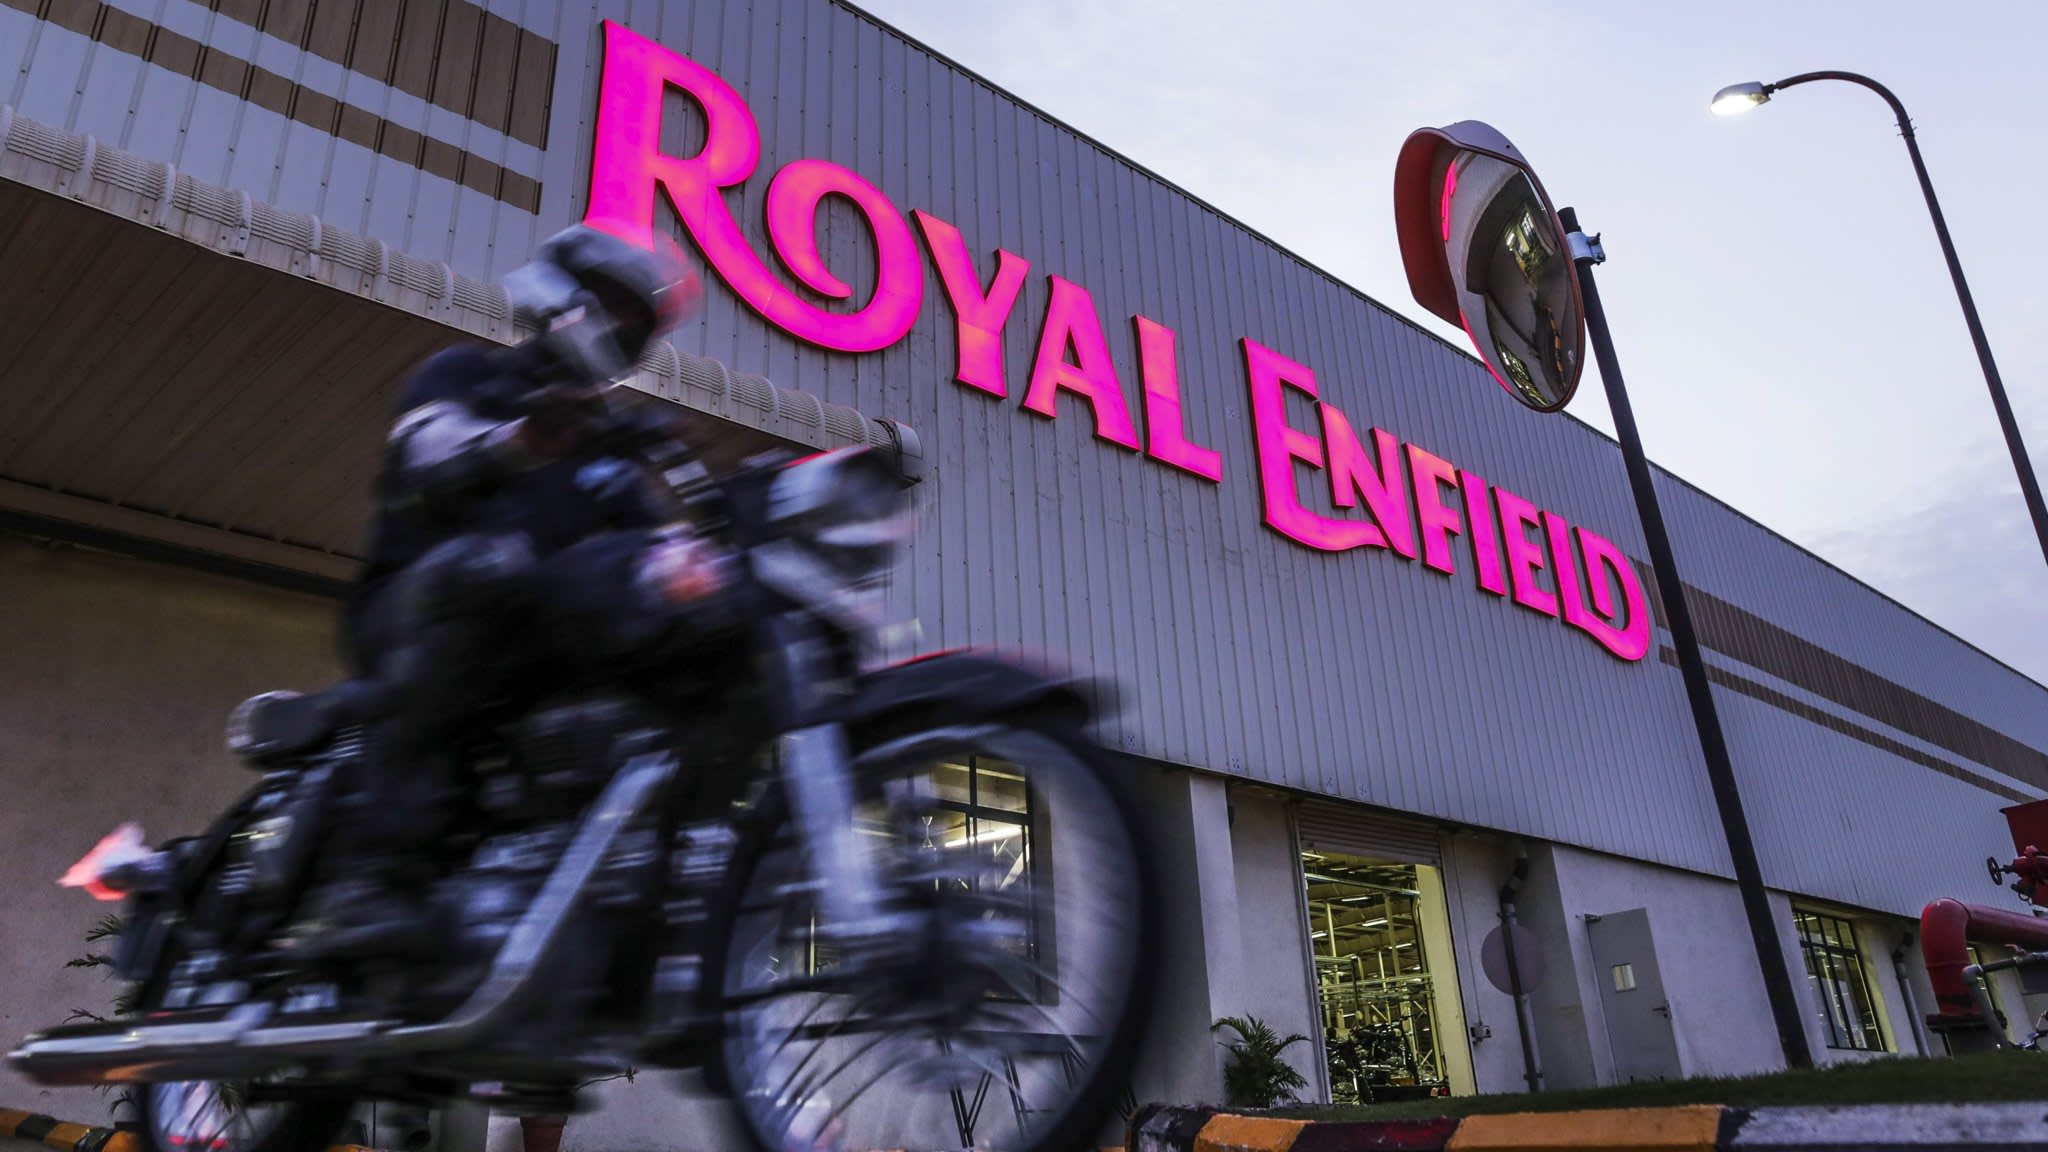 India's Royal Enfield bets on global sales push | Financial Times